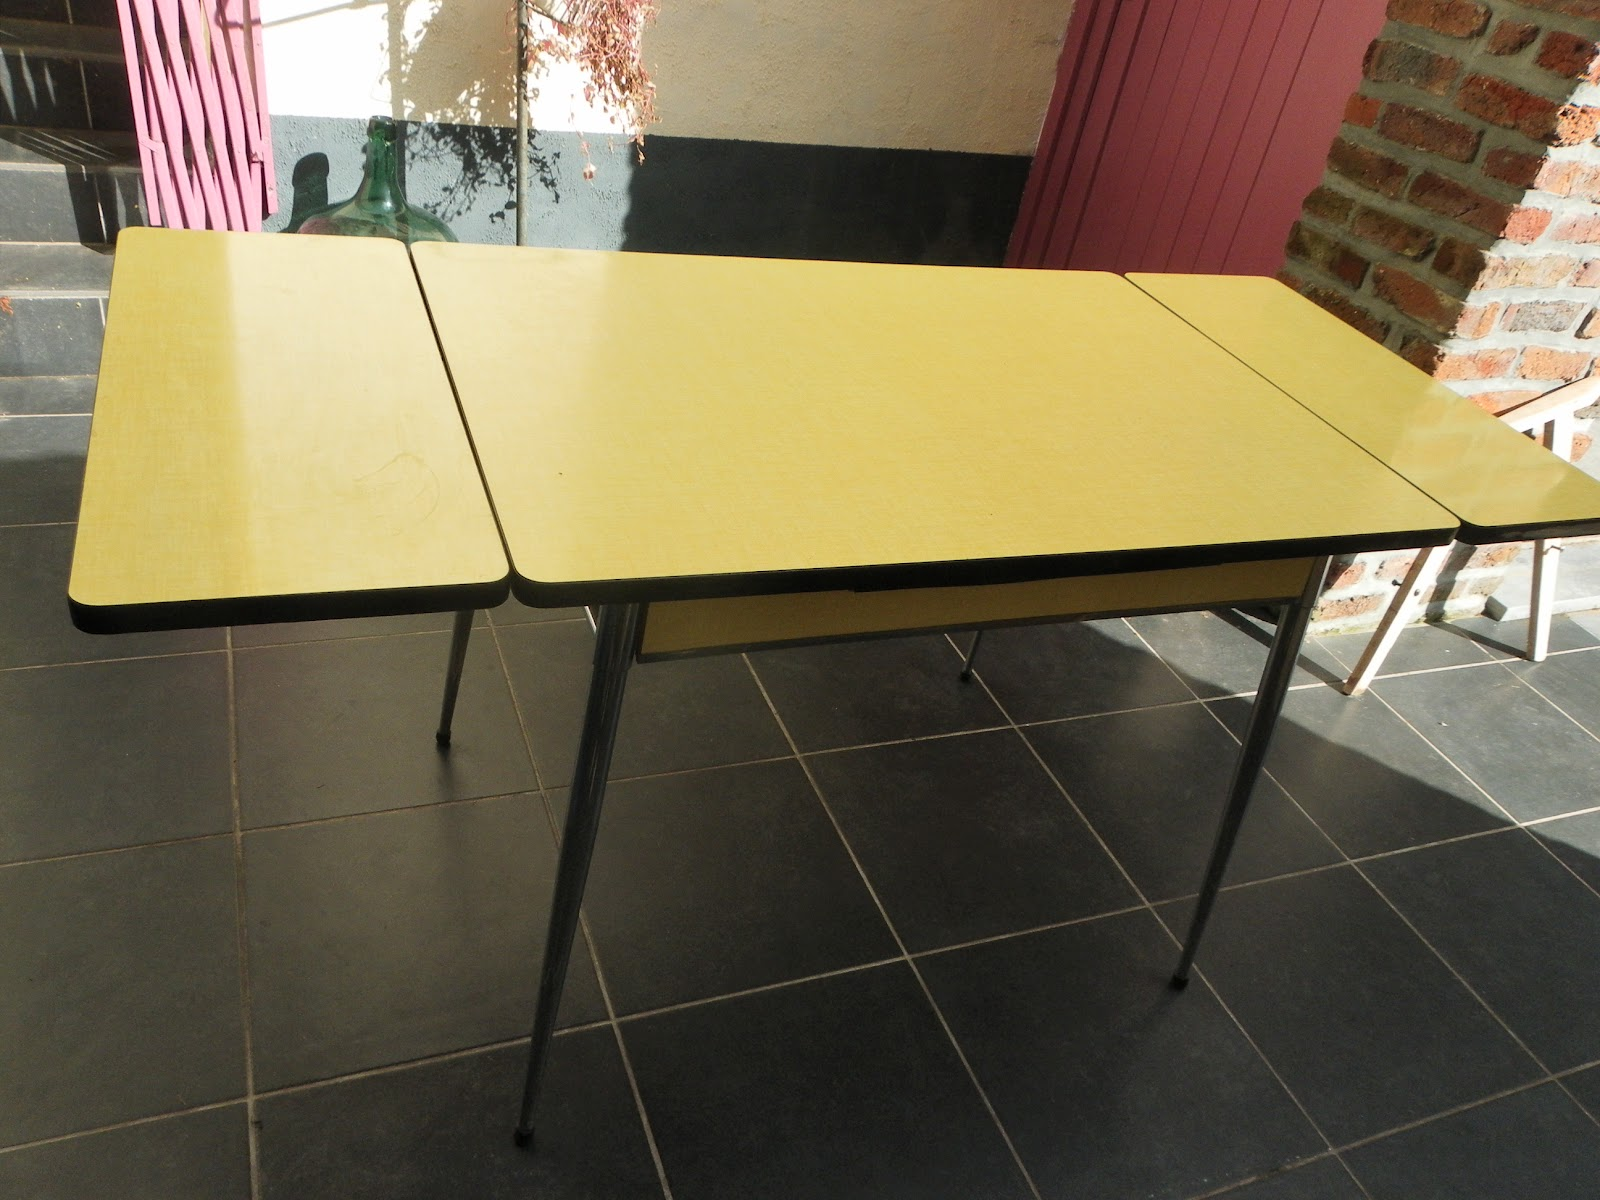 lucie la chineuse table en formica jaune. Black Bedroom Furniture Sets. Home Design Ideas